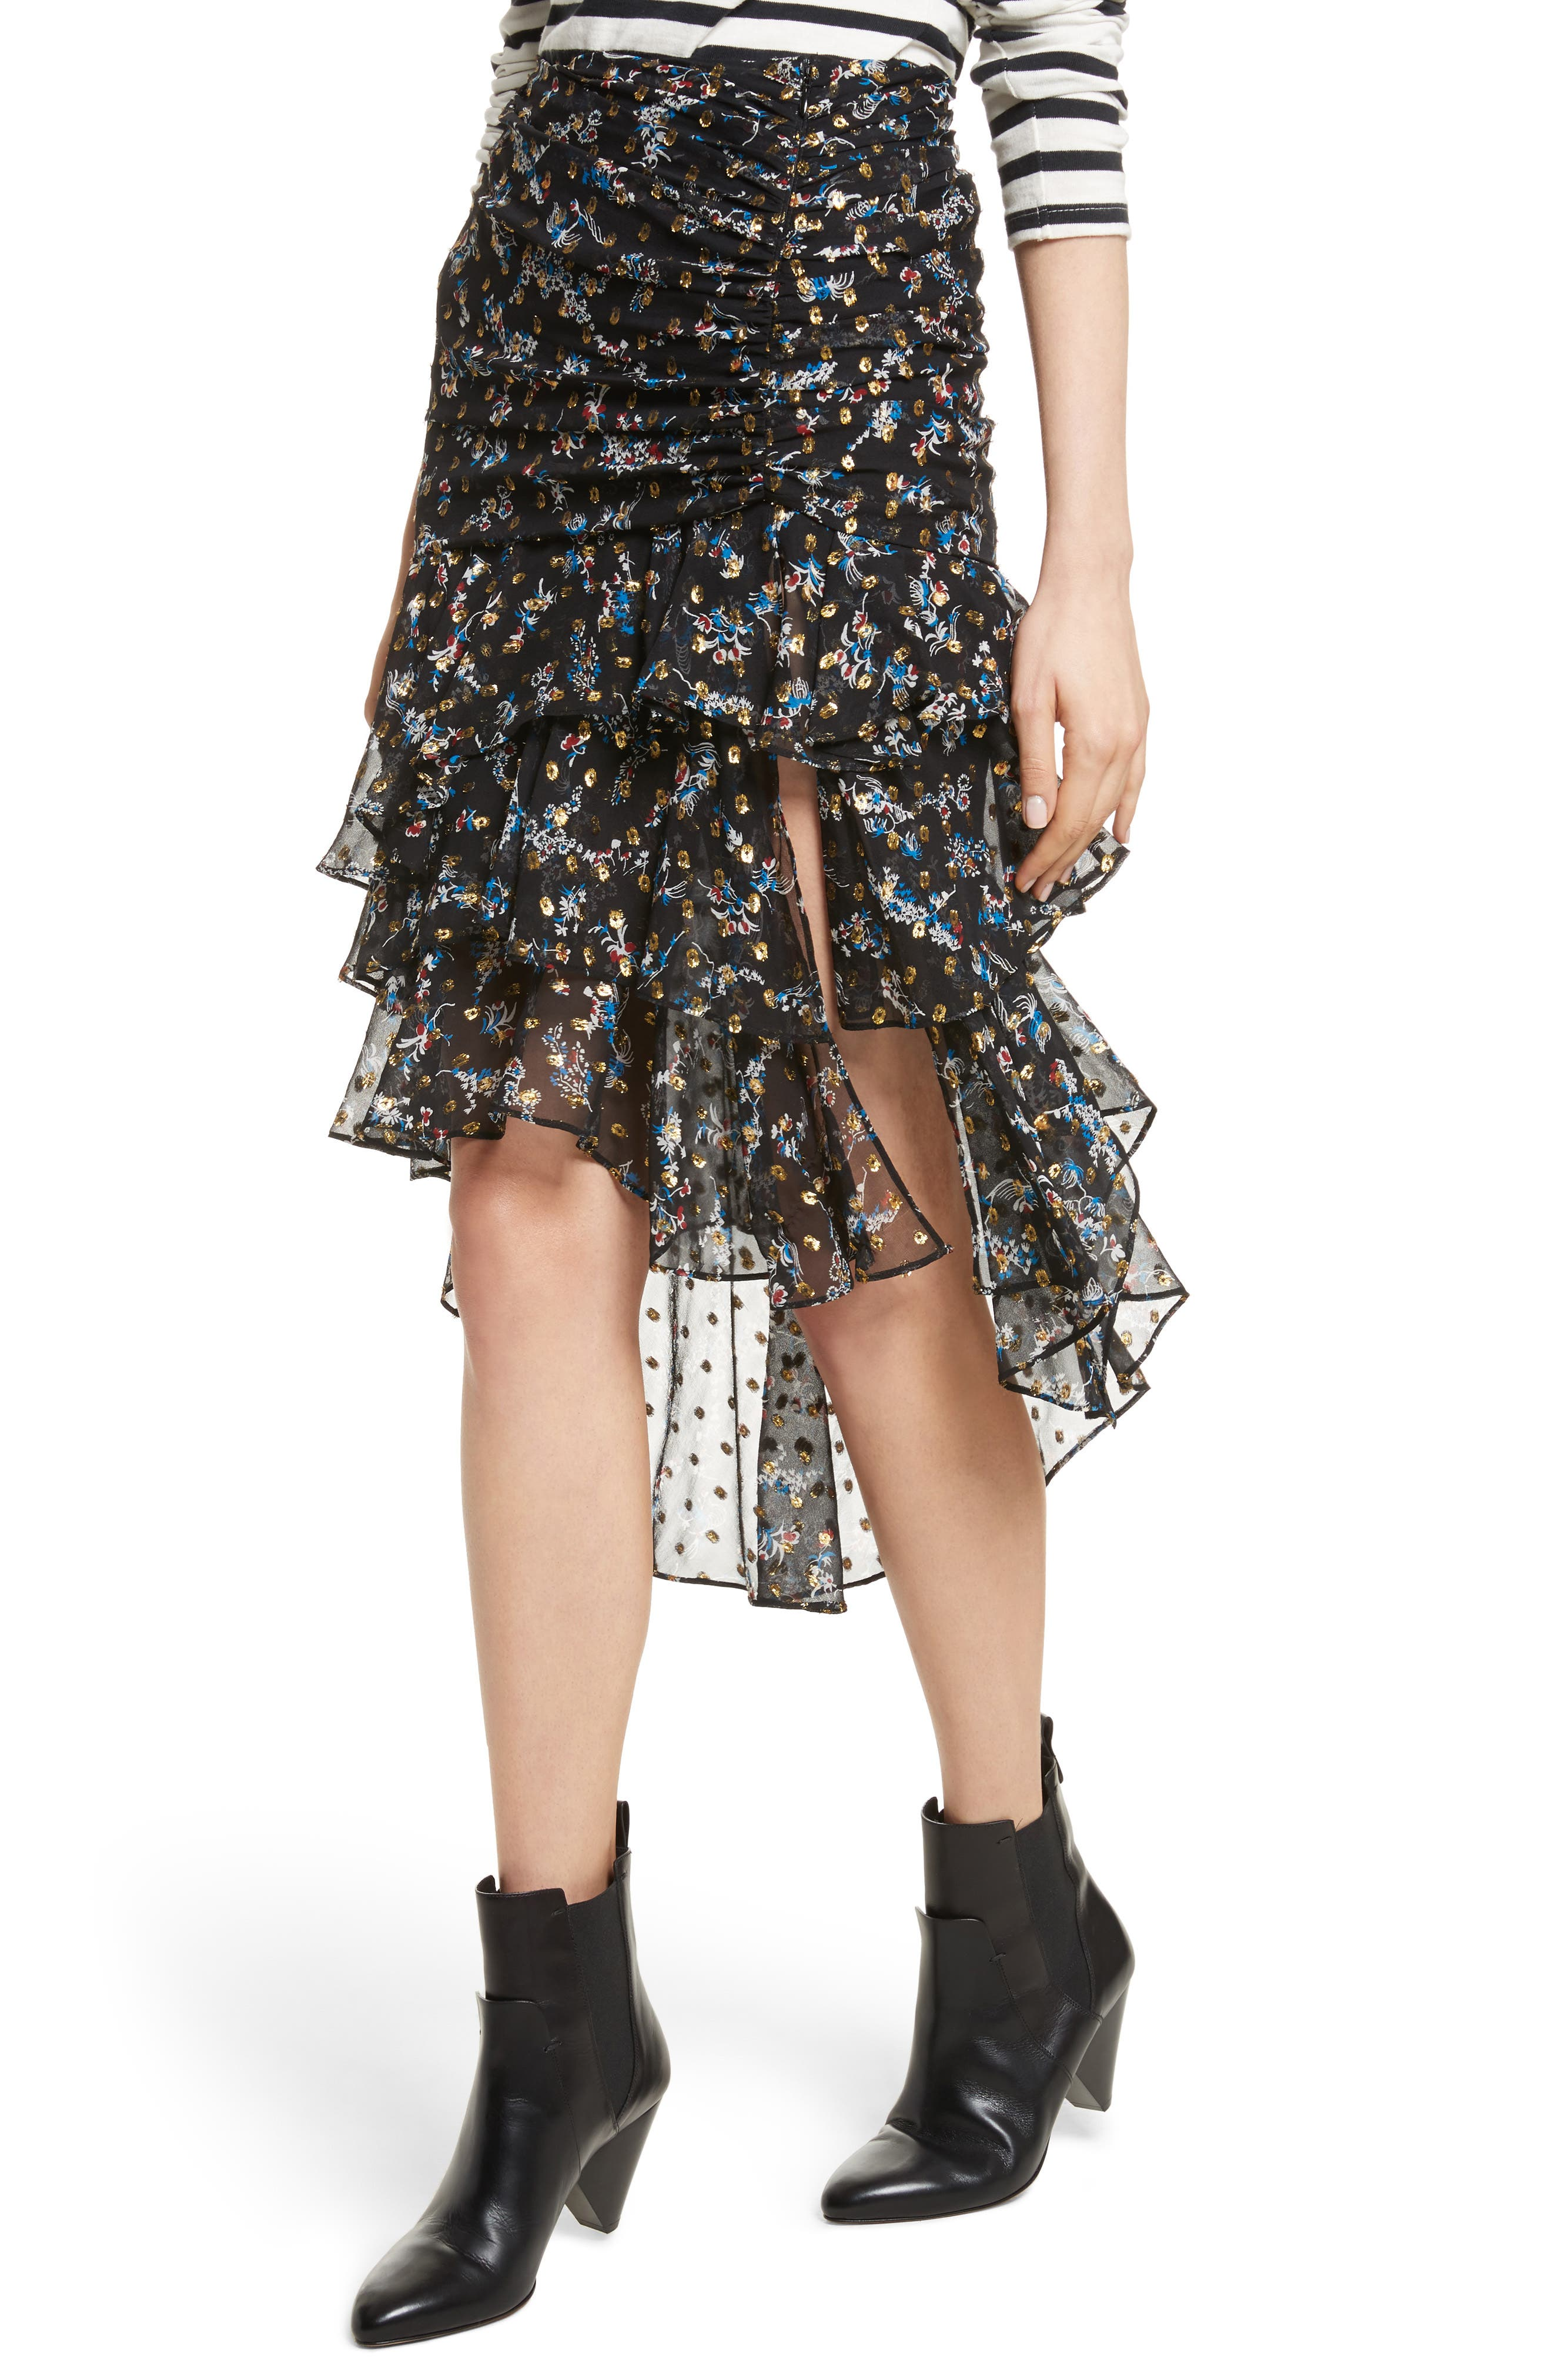 Cella Metallic Floral Print Midi Skirt,                             Alternate thumbnail 4, color,                             008